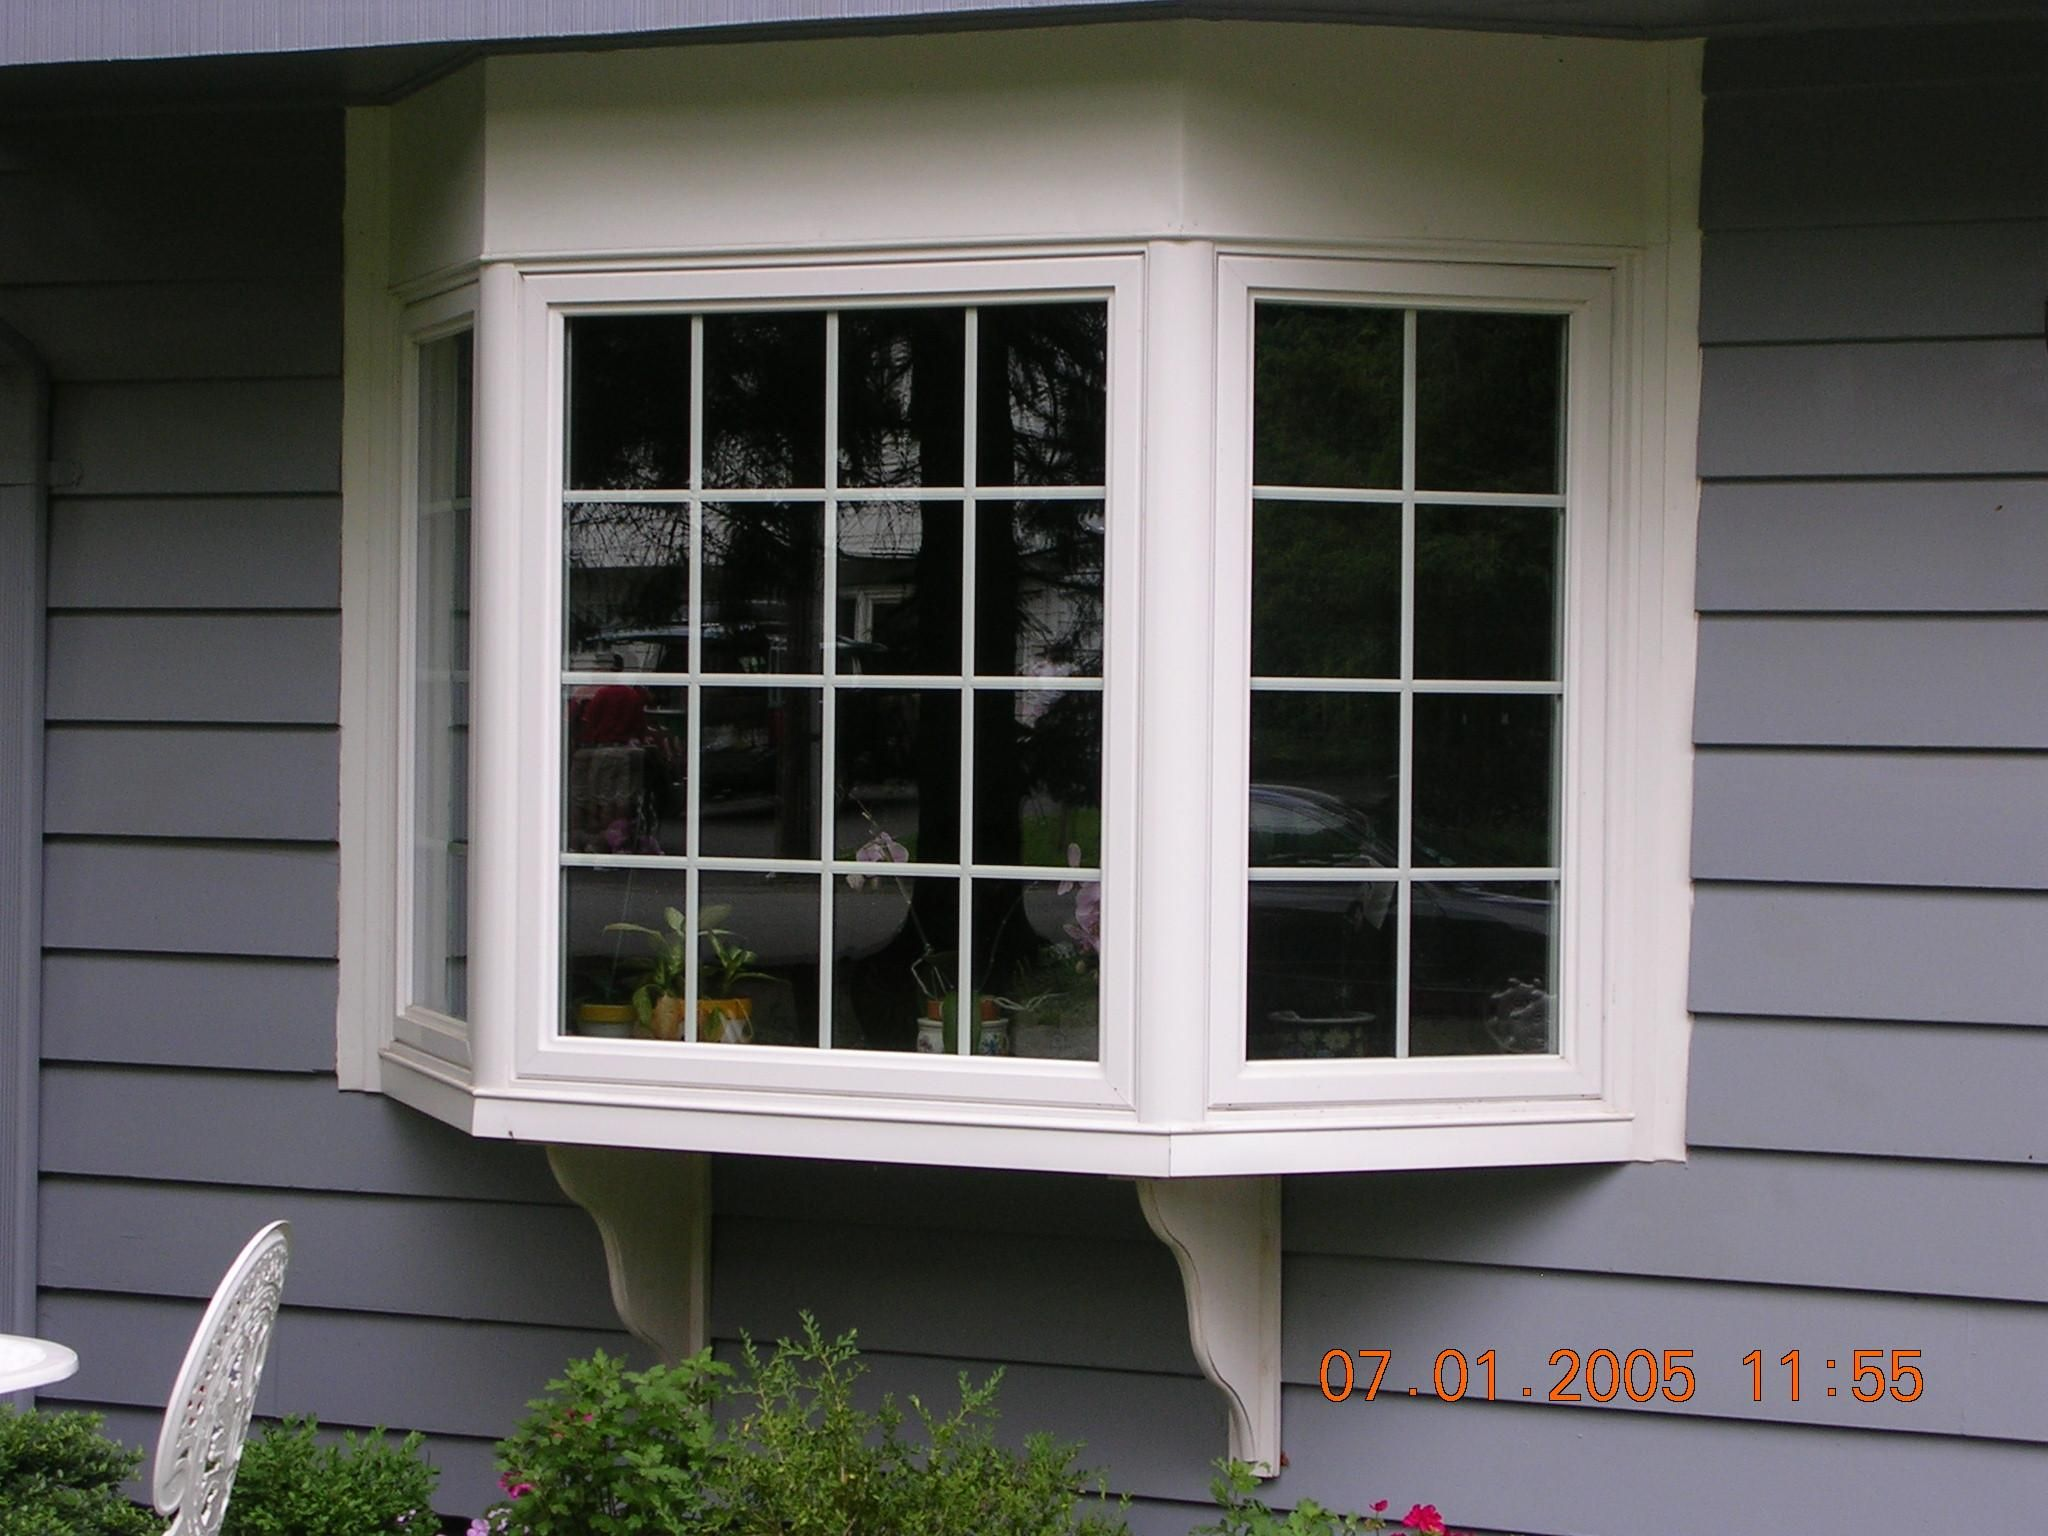 Interior window frames - Awesome White Wooden Window Frames Combine With Grey Wooden Wall Paneling For Bay Window Design Ideas Bay Window Design Ideas Exterior Bay Window Design